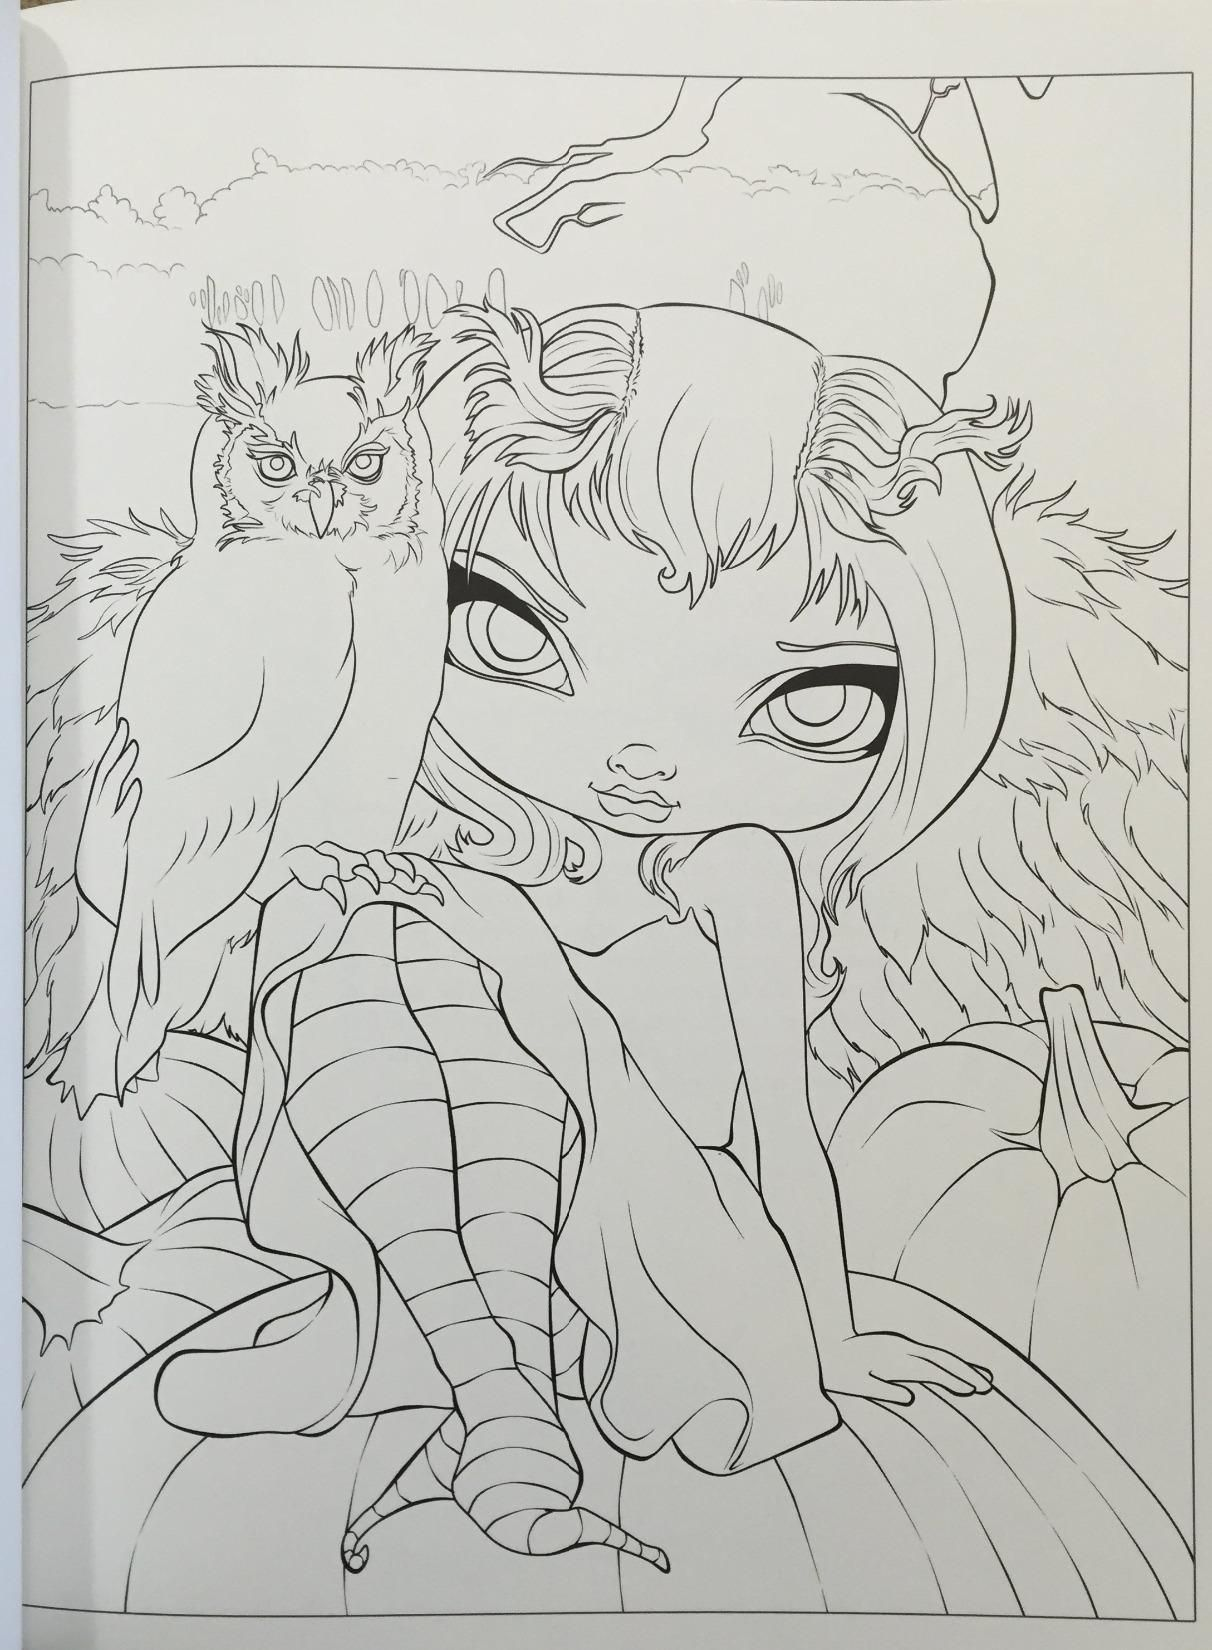 jasmine becket griffith coloring pages Amazon.com: iiiireader's review of Jasmine Becket Griffith  jasmine becket griffith coloring pages